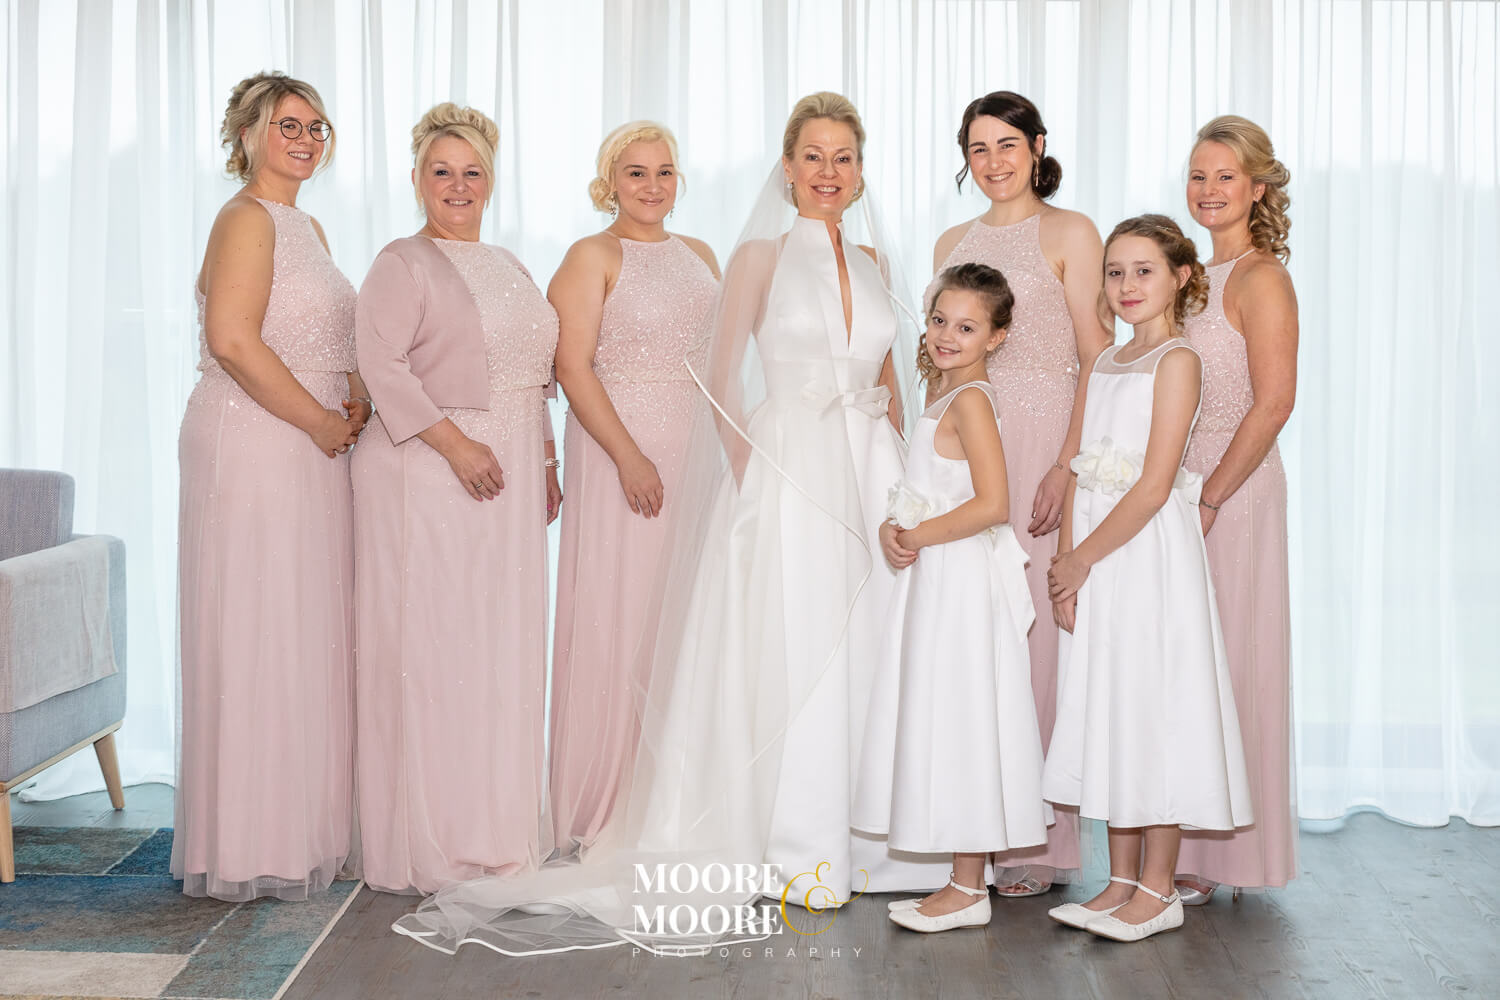 Bride and bridesmaids portrait photo. Wedding Photos by Moore & Moore Photography, Hampshire